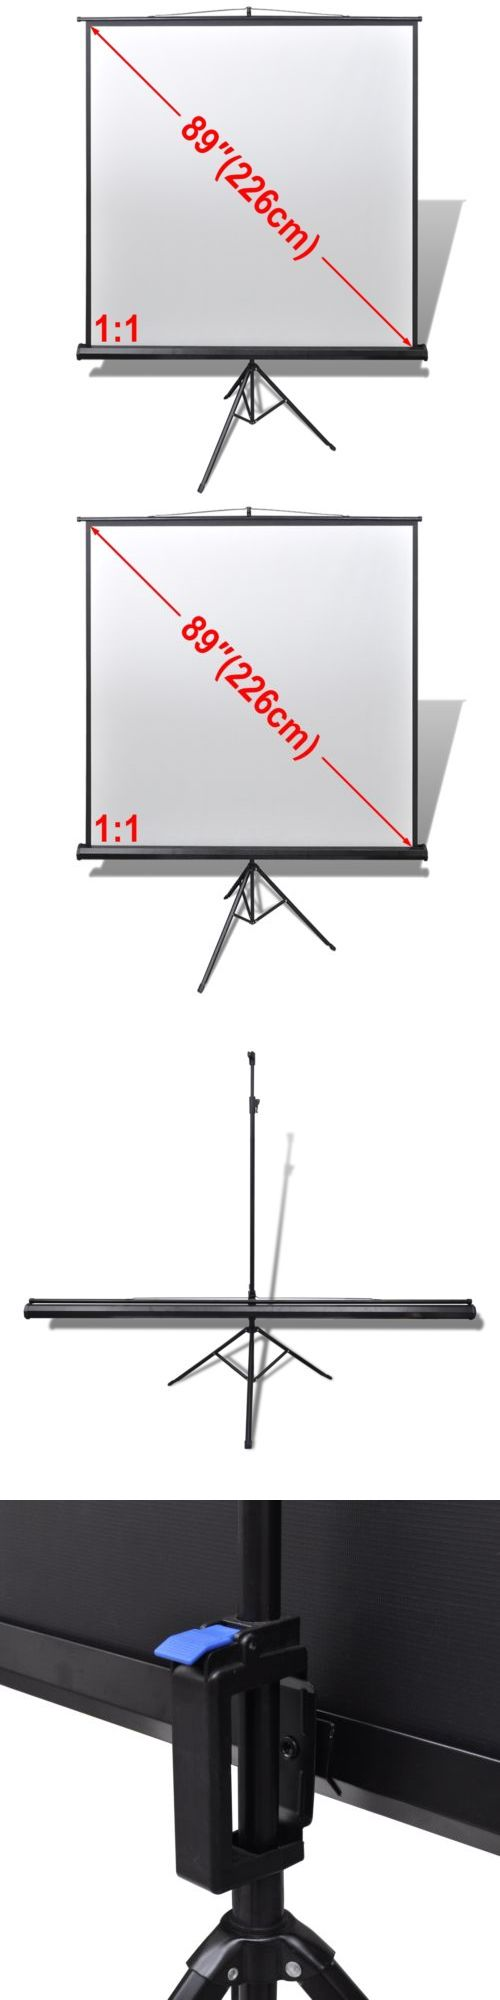 Projection Screens and Material: 89 1:1 Portable Projector Screen Matte White Manual Pull Down Tripod Theater -> BUY IT NOW ONLY: $59.99 on eBay!